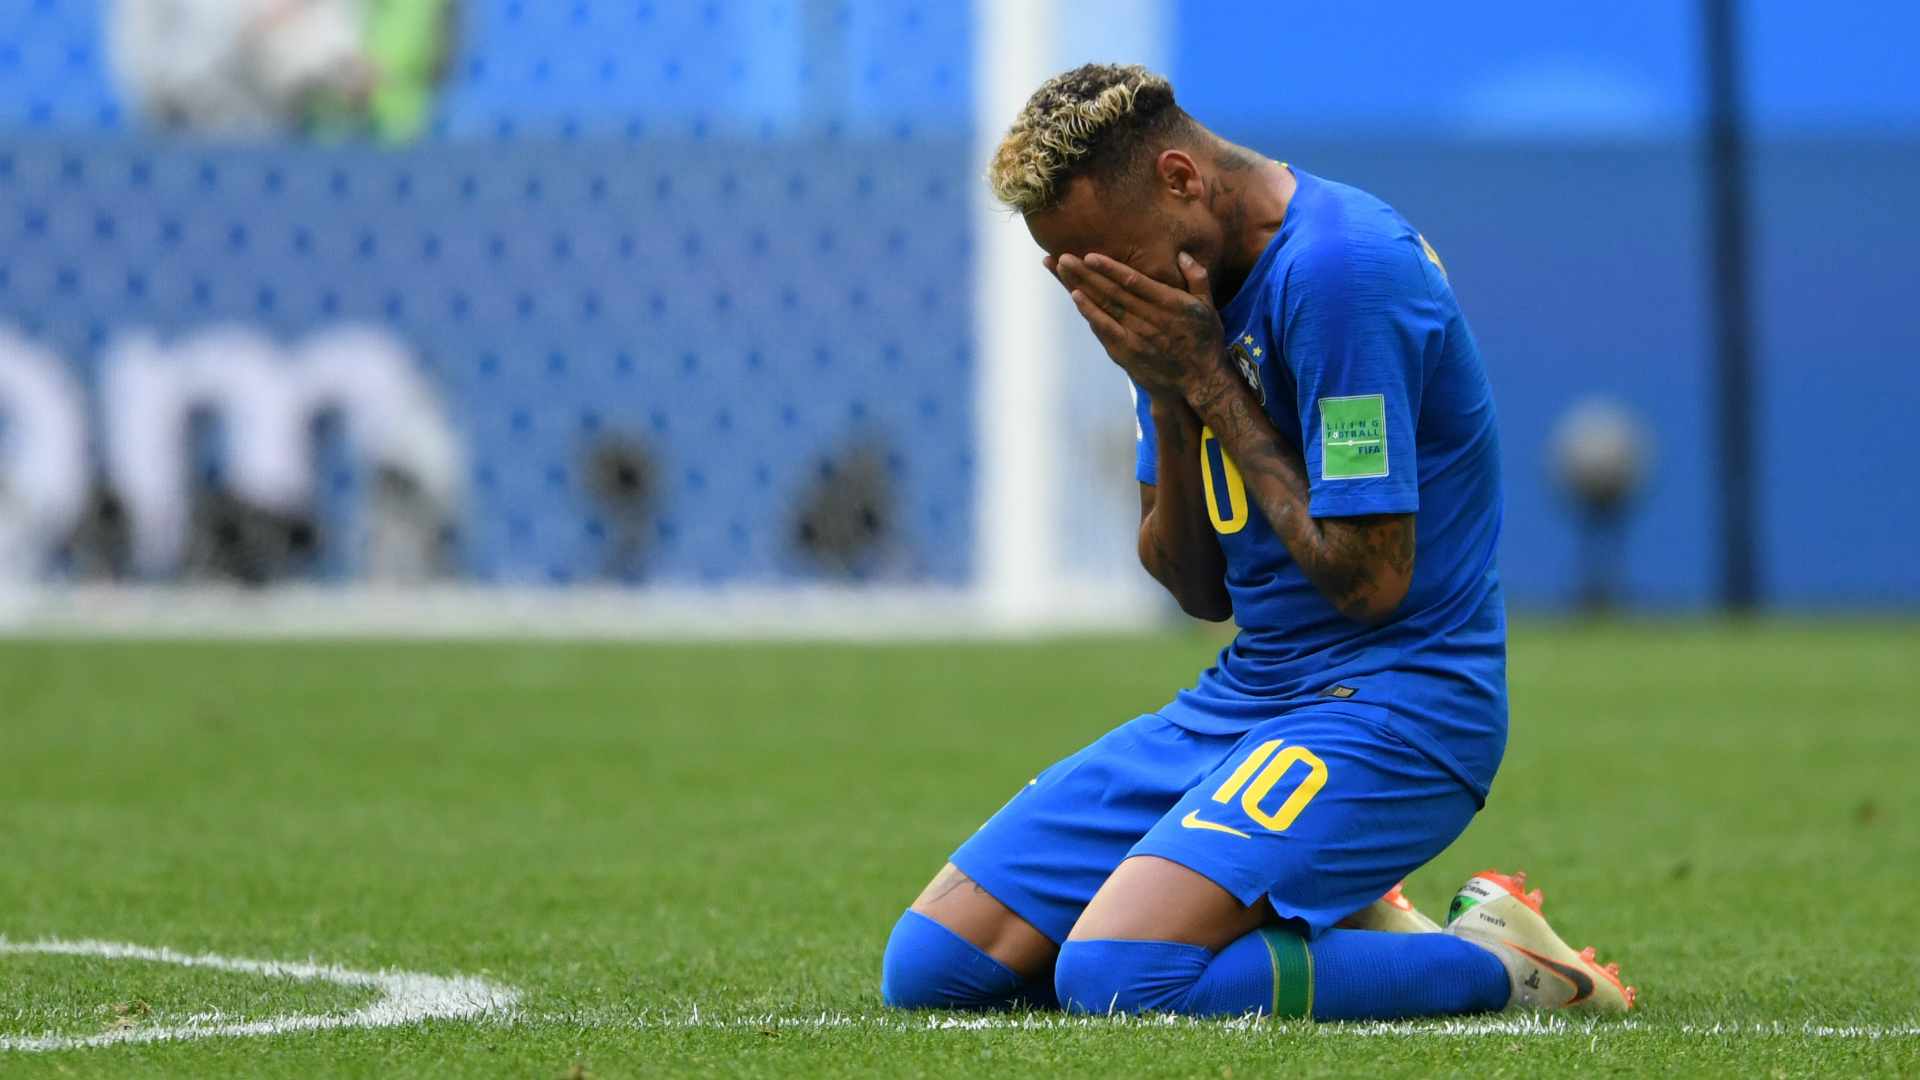 'People don't know what I went through' - Neymar explains tears after Brazil win